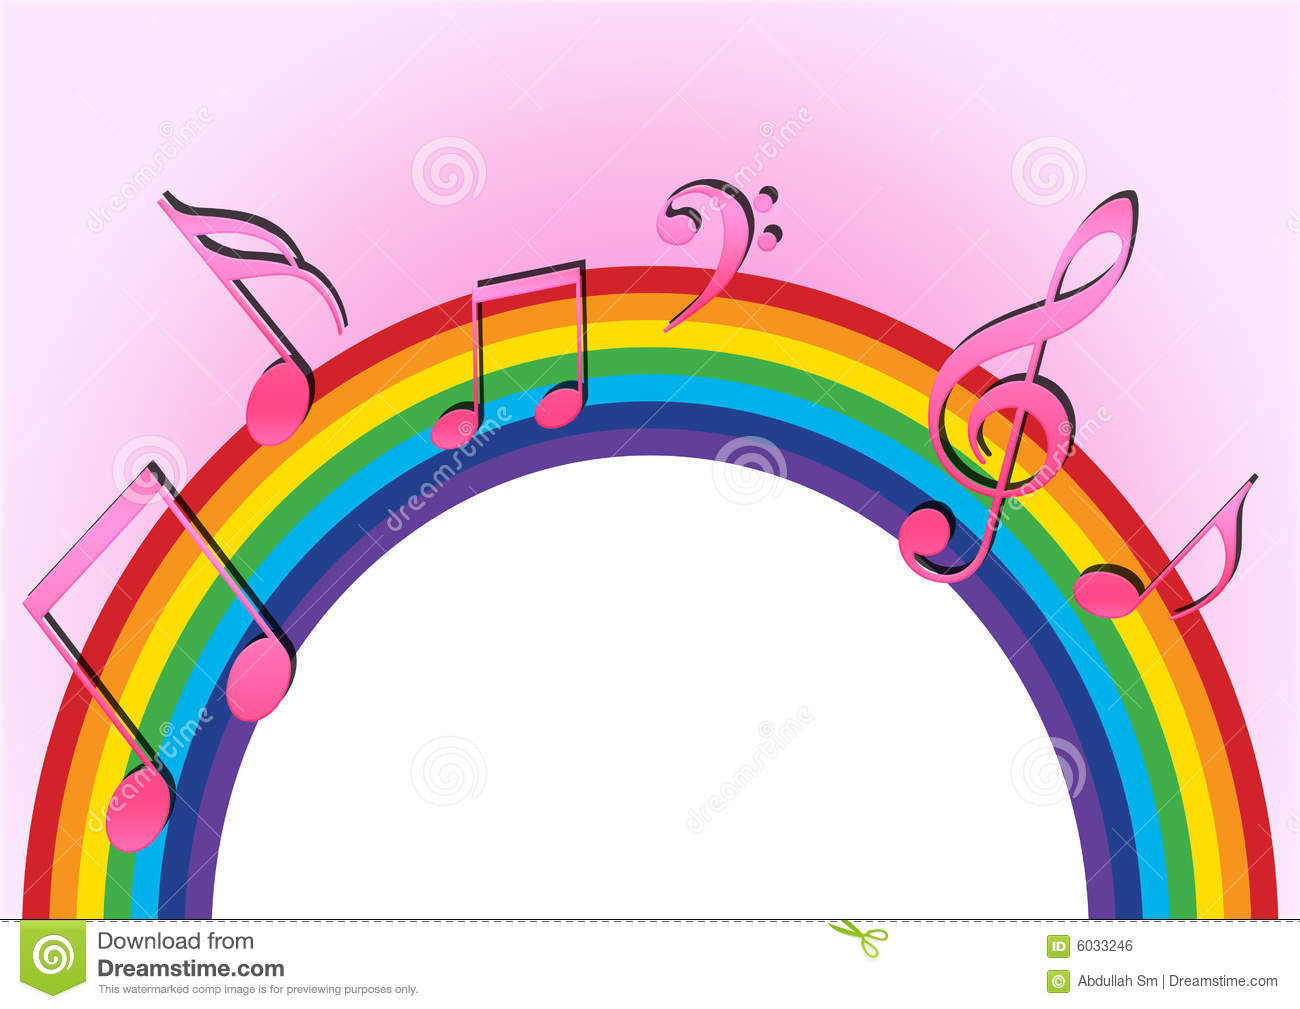 Rainbow Notes On Light Background Stock: Rainbow Music Stock Illustration. Illustration Of Creative